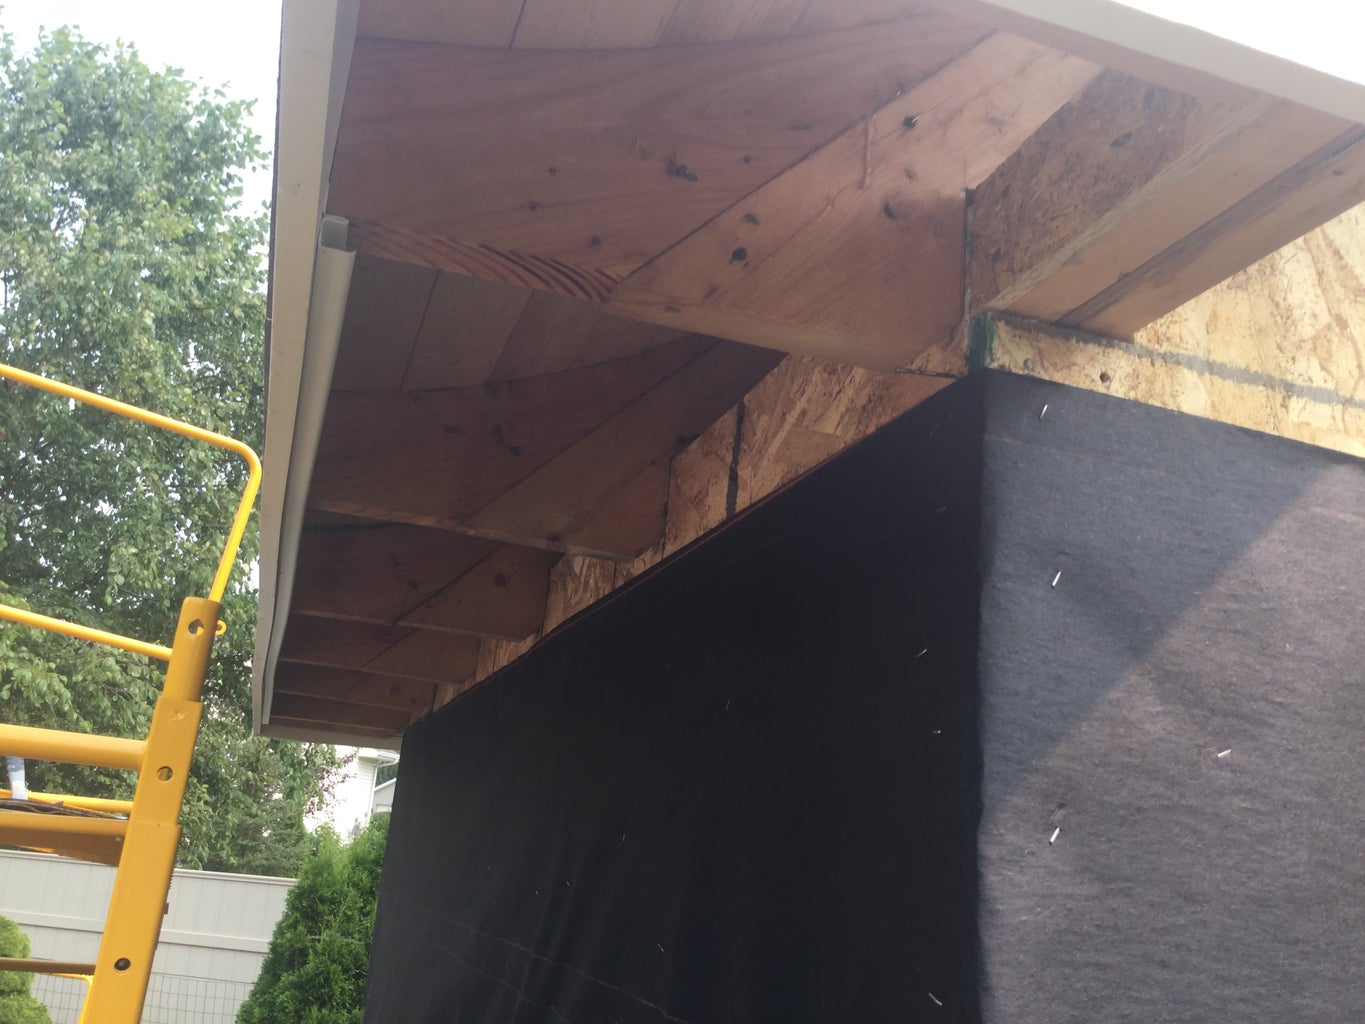 Installing the Gable and Eave Fascia and Soffits 'J' and 'F' for Soffits.